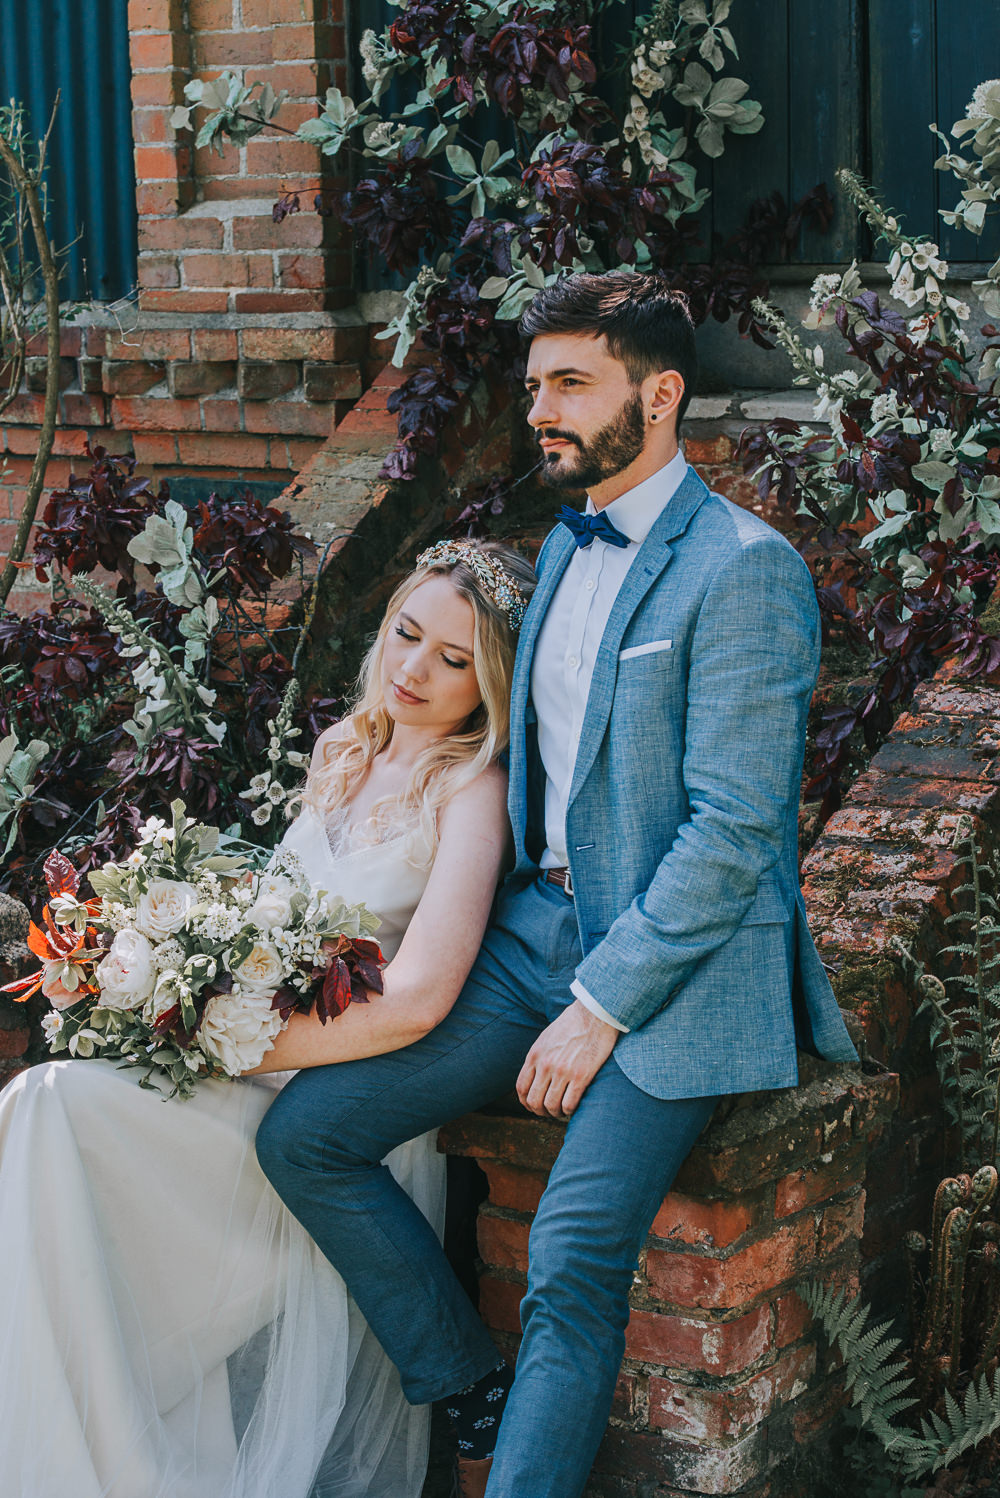 Secret Dresshouse Ethereal Bride Bridal Gown Blue Linen Jacket Bow Tie Groom Leaf Foliage Flower Florals River Romance Wedding Ideas Mindy Coe Photography